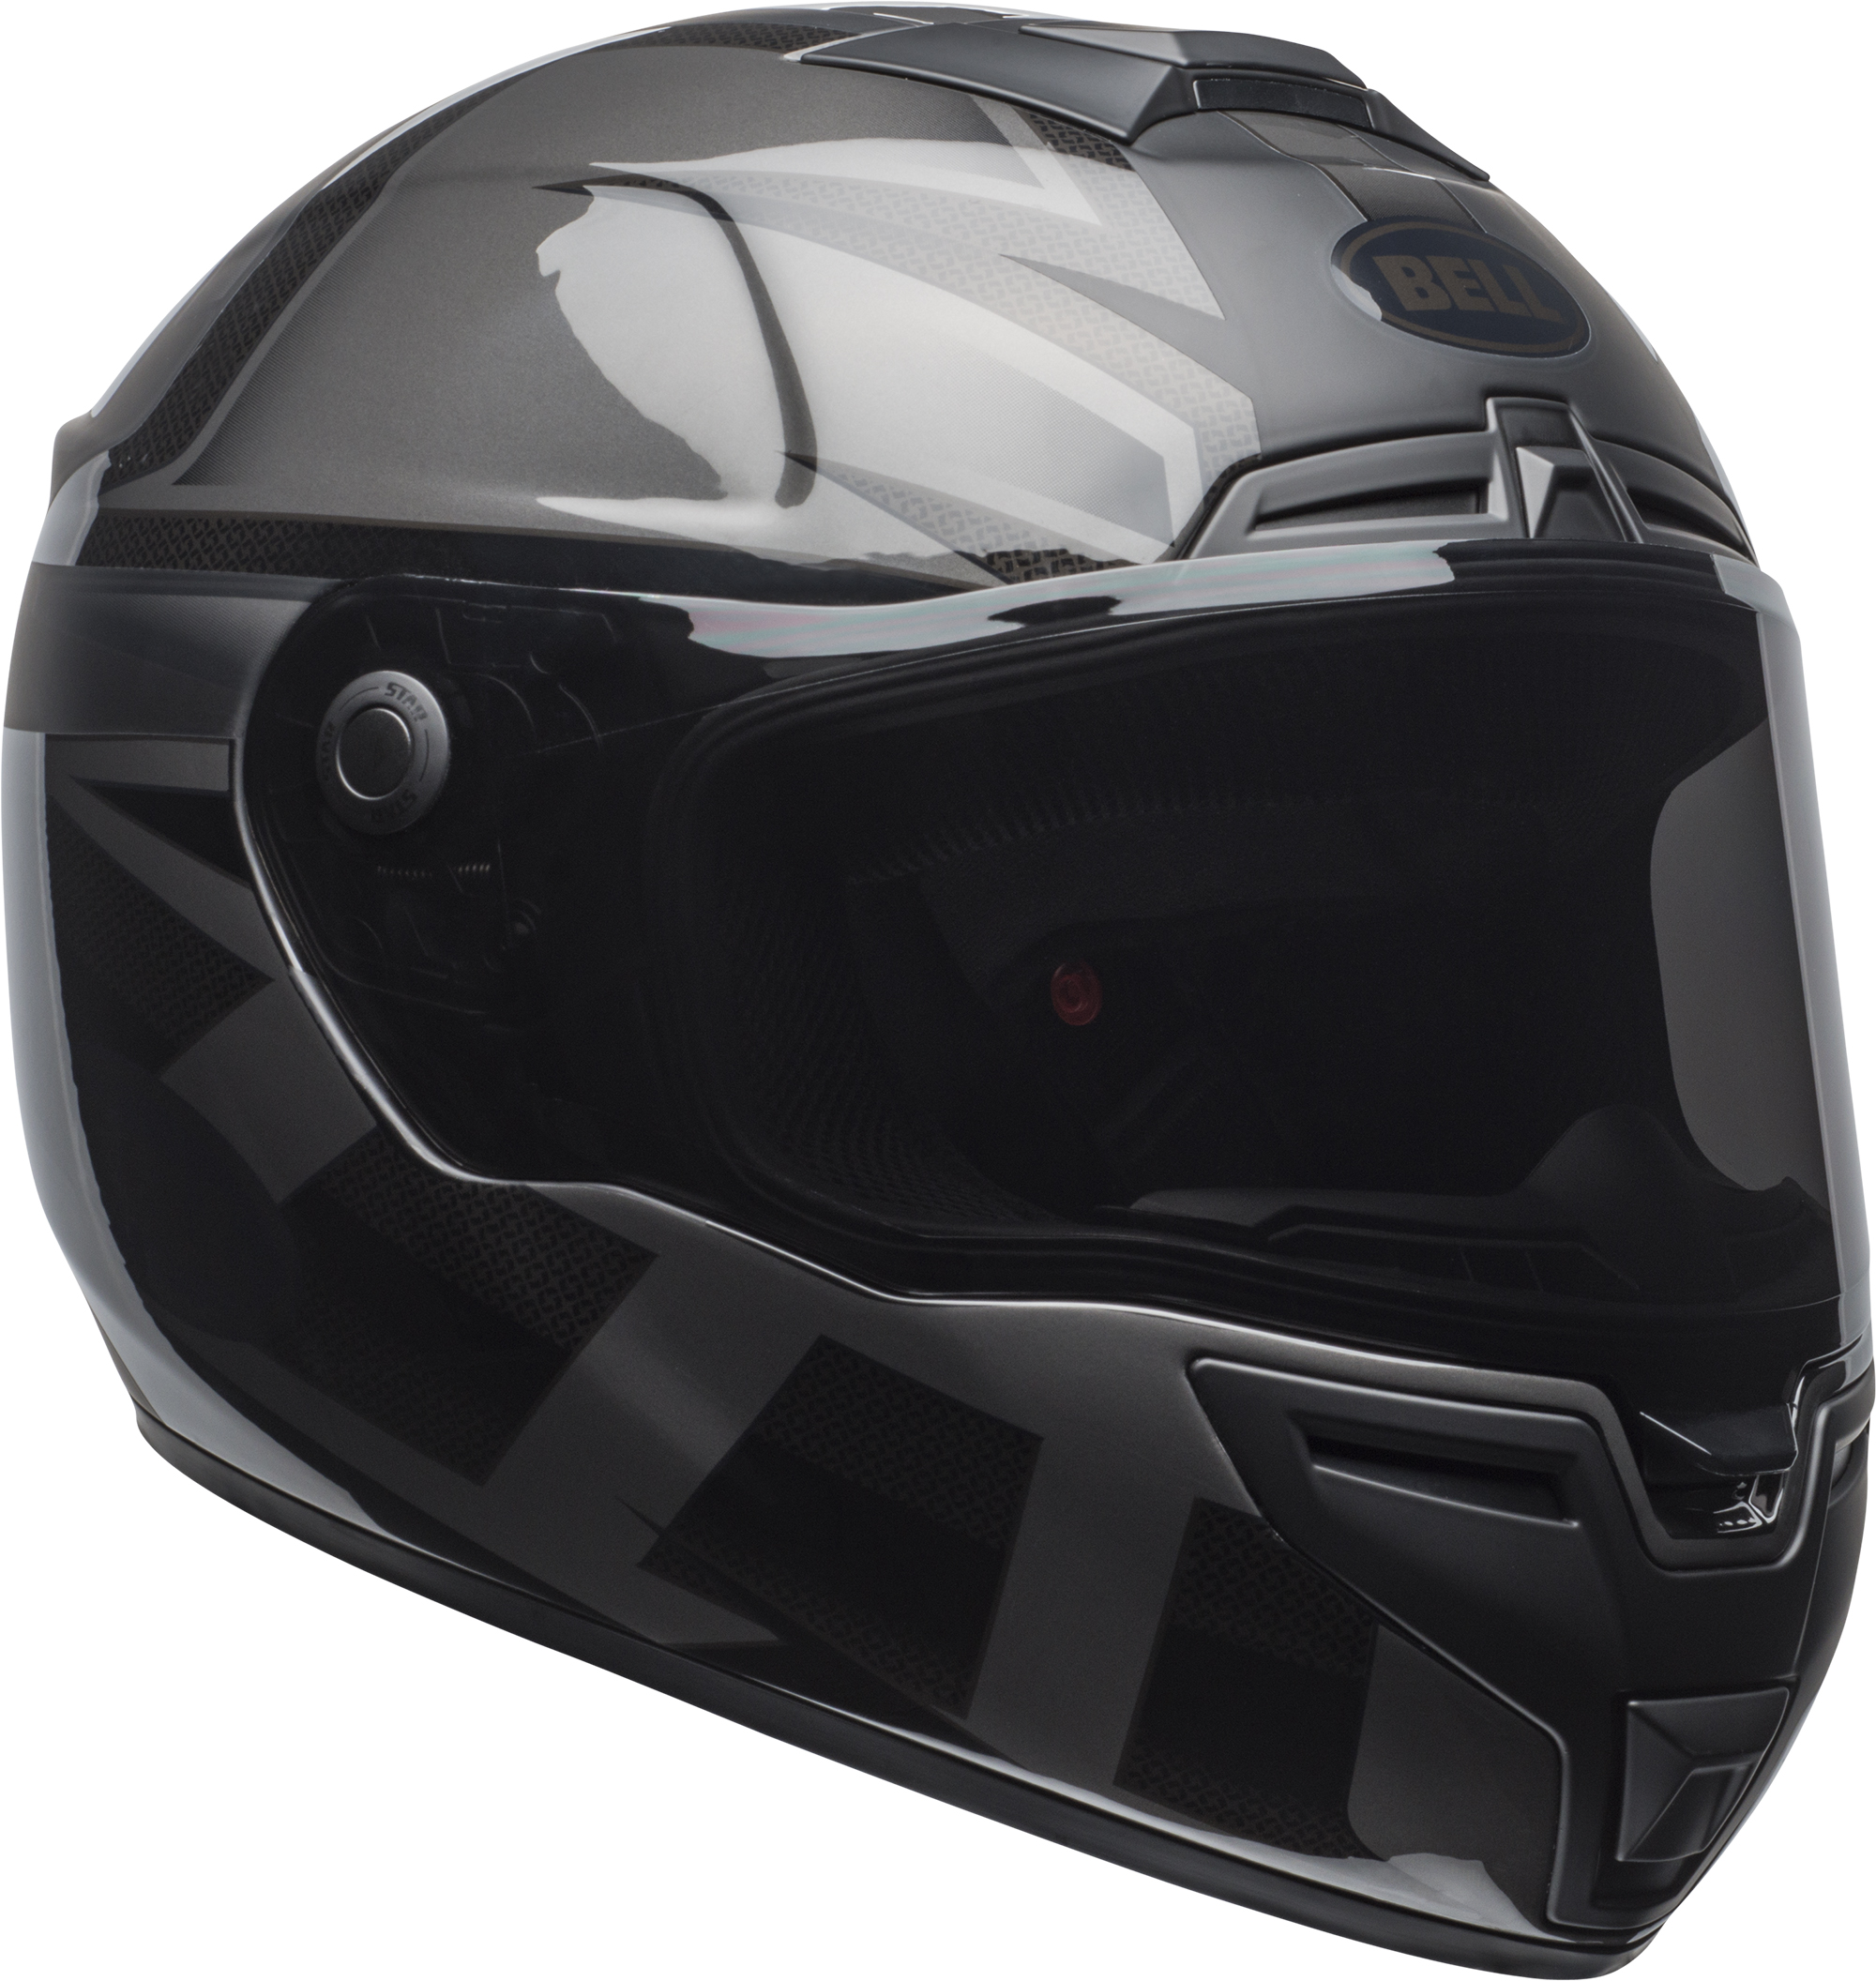 Bell Full Face Helmet >> Bell Helmets Srt Blackout Full Face Helmet Ebay